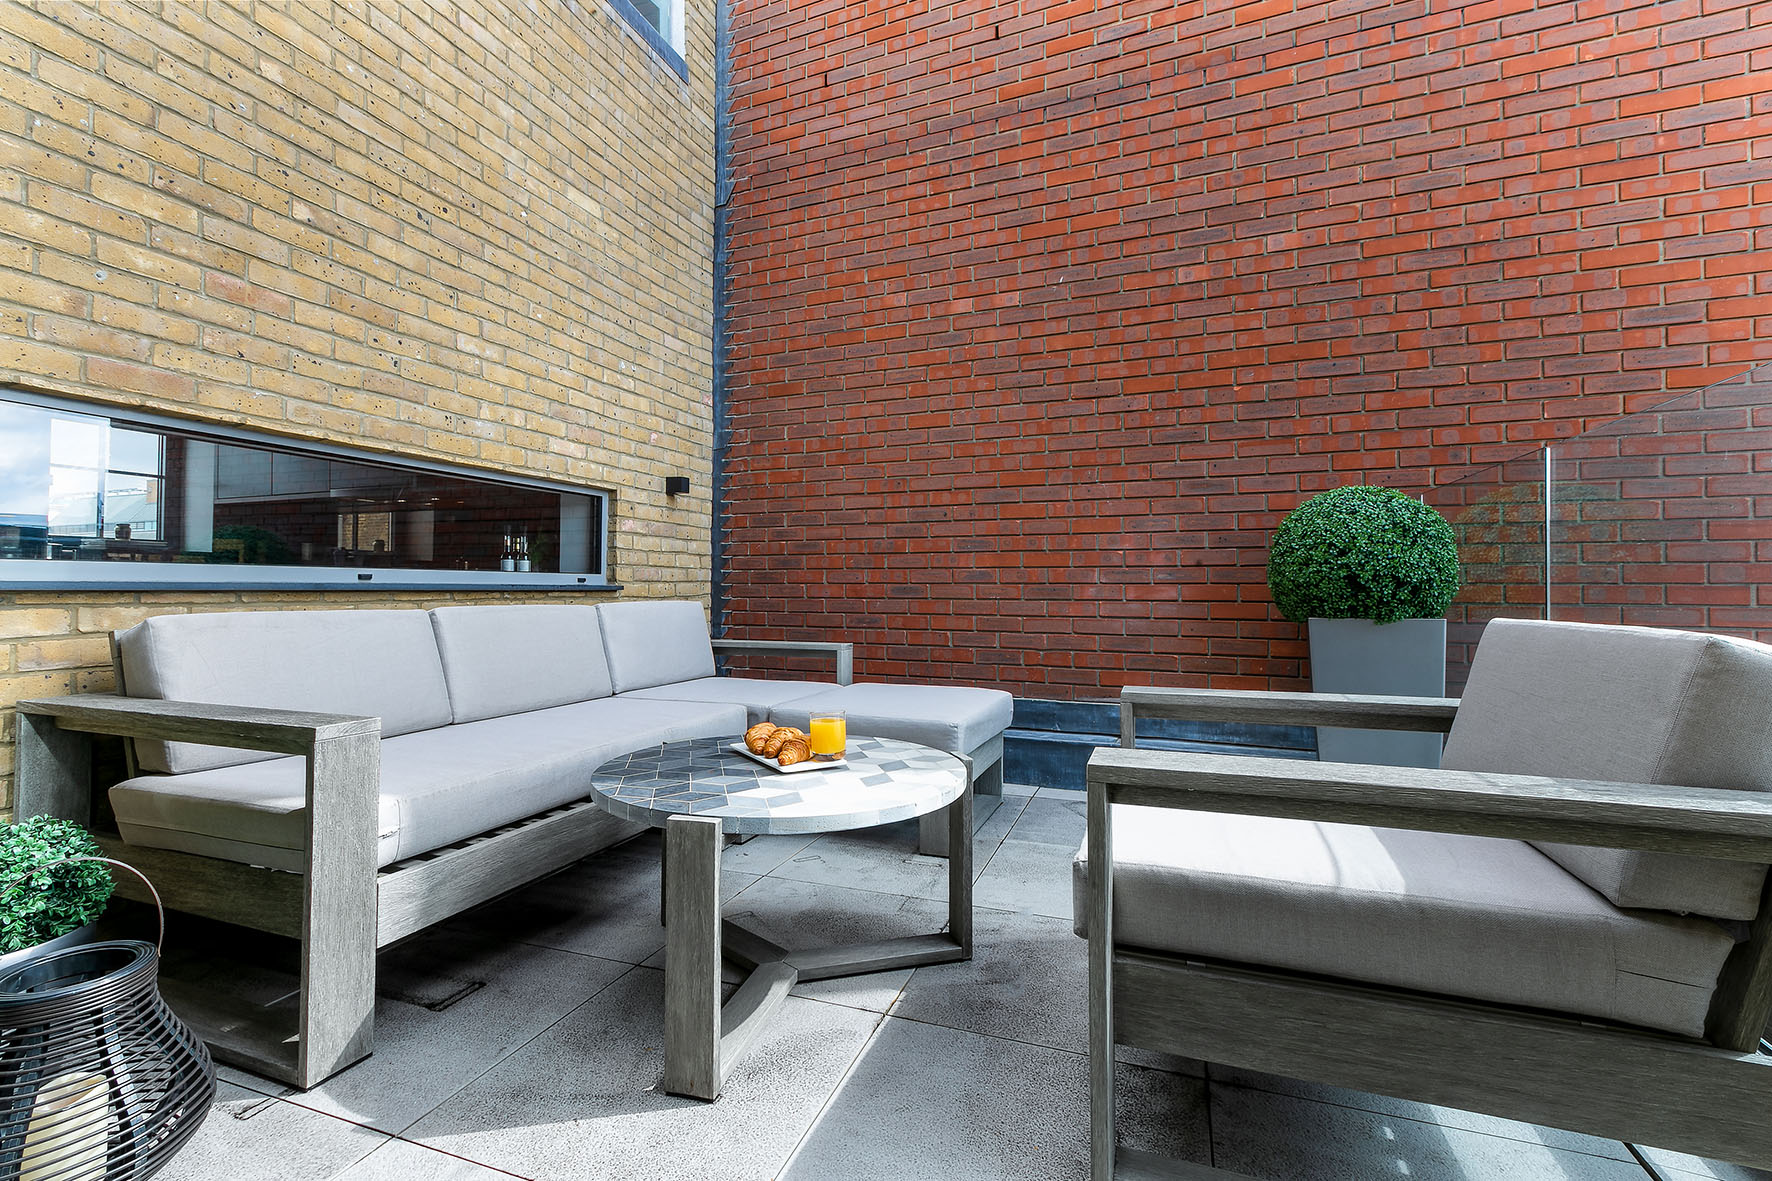 Lovelydays luxury service apartment rental - London - Soho - Great Marlborough St. IX - Lovelysuite - 2 bedrooms - 2 bathrooms - Huge terrace - 5 star apartment in london - 55f8495b4a56 - Lovelydays